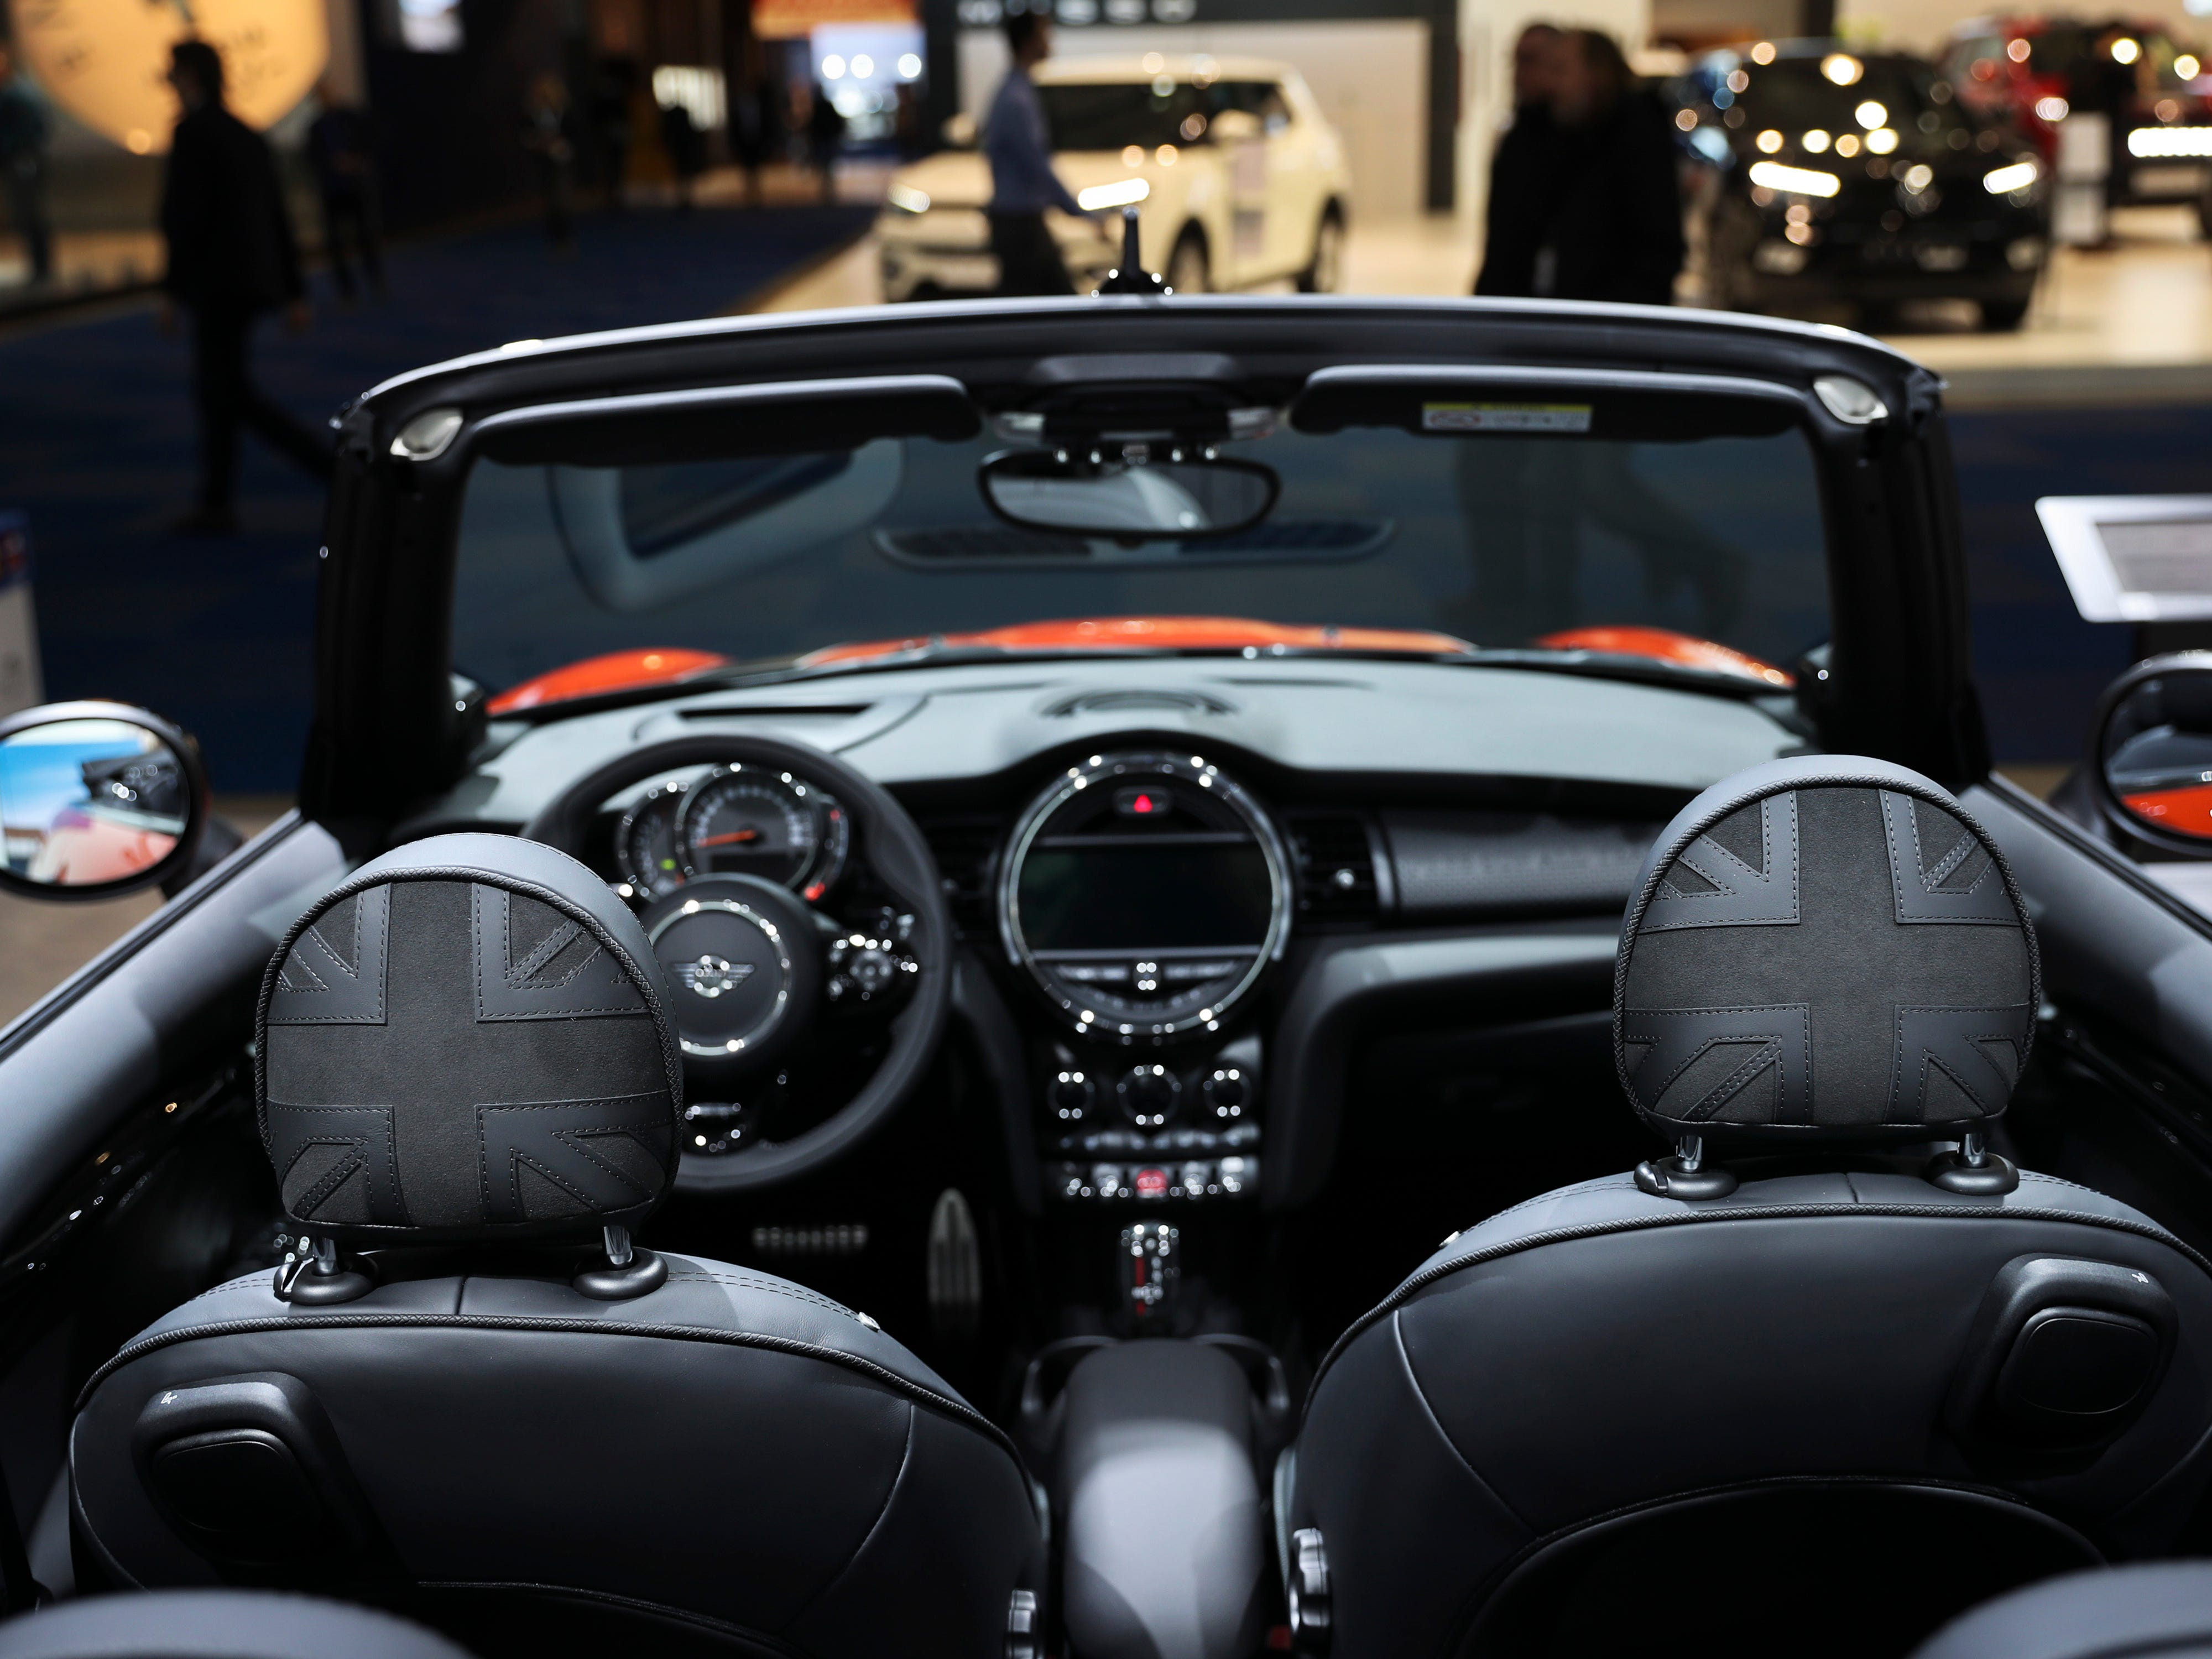 People walk past the new Mini Cabrio on display at the Brussels Auto Show. The show runs through Jan. 27, 2019.